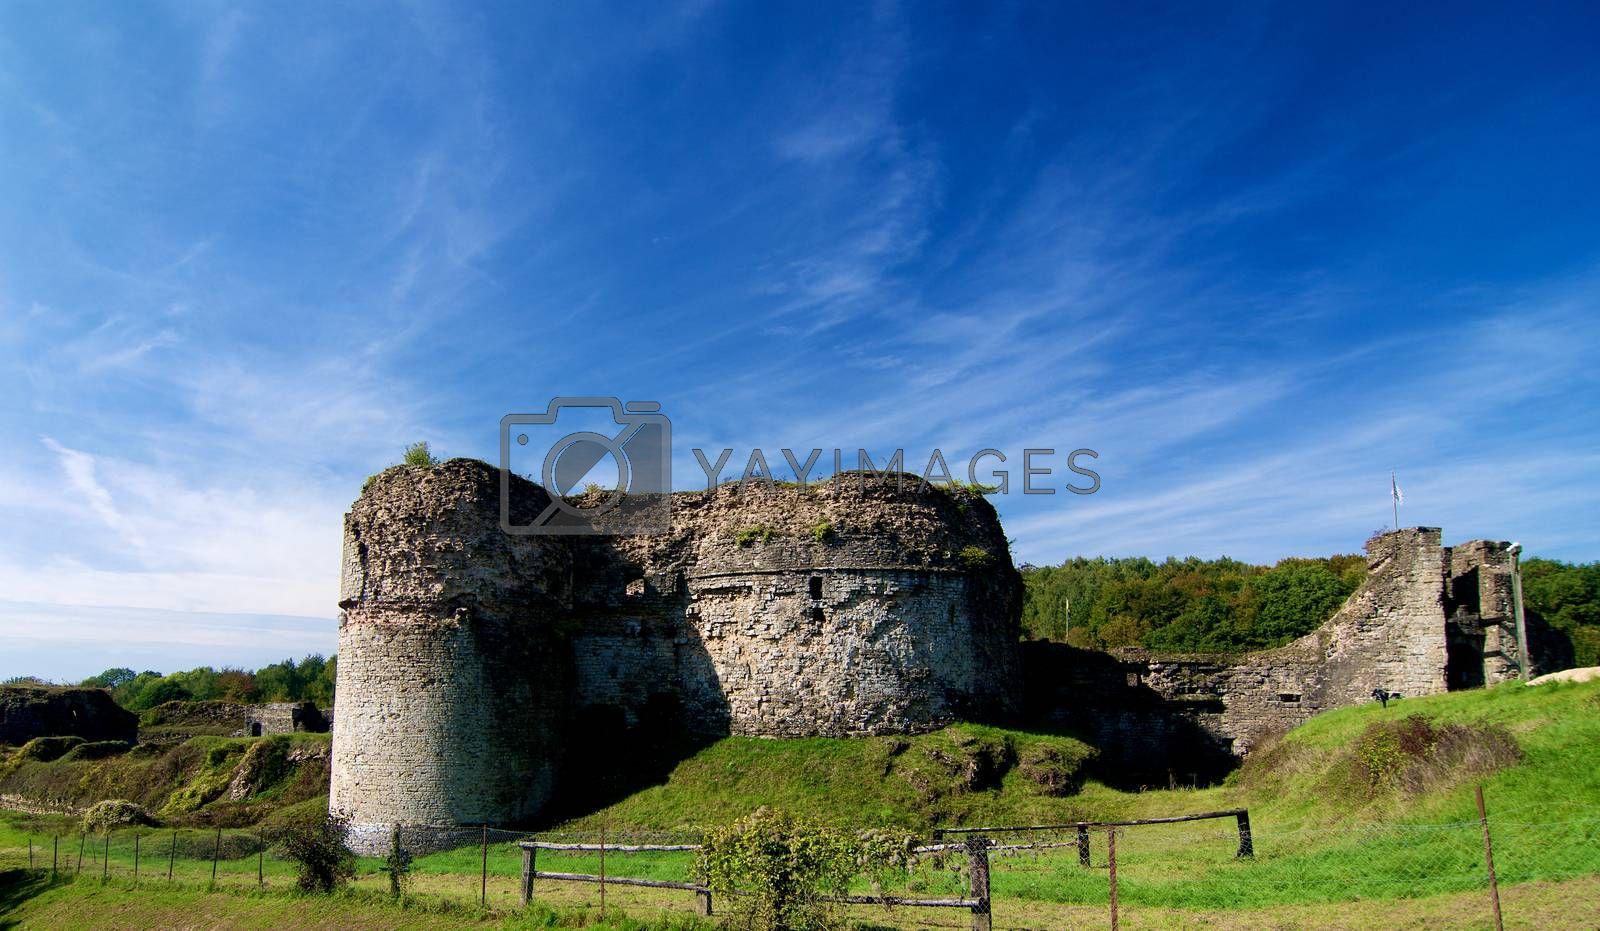 Ruins of Medieval Chateau de Montcornet against Blue Sky in Sunny Day Outdoors. Ardennes, France